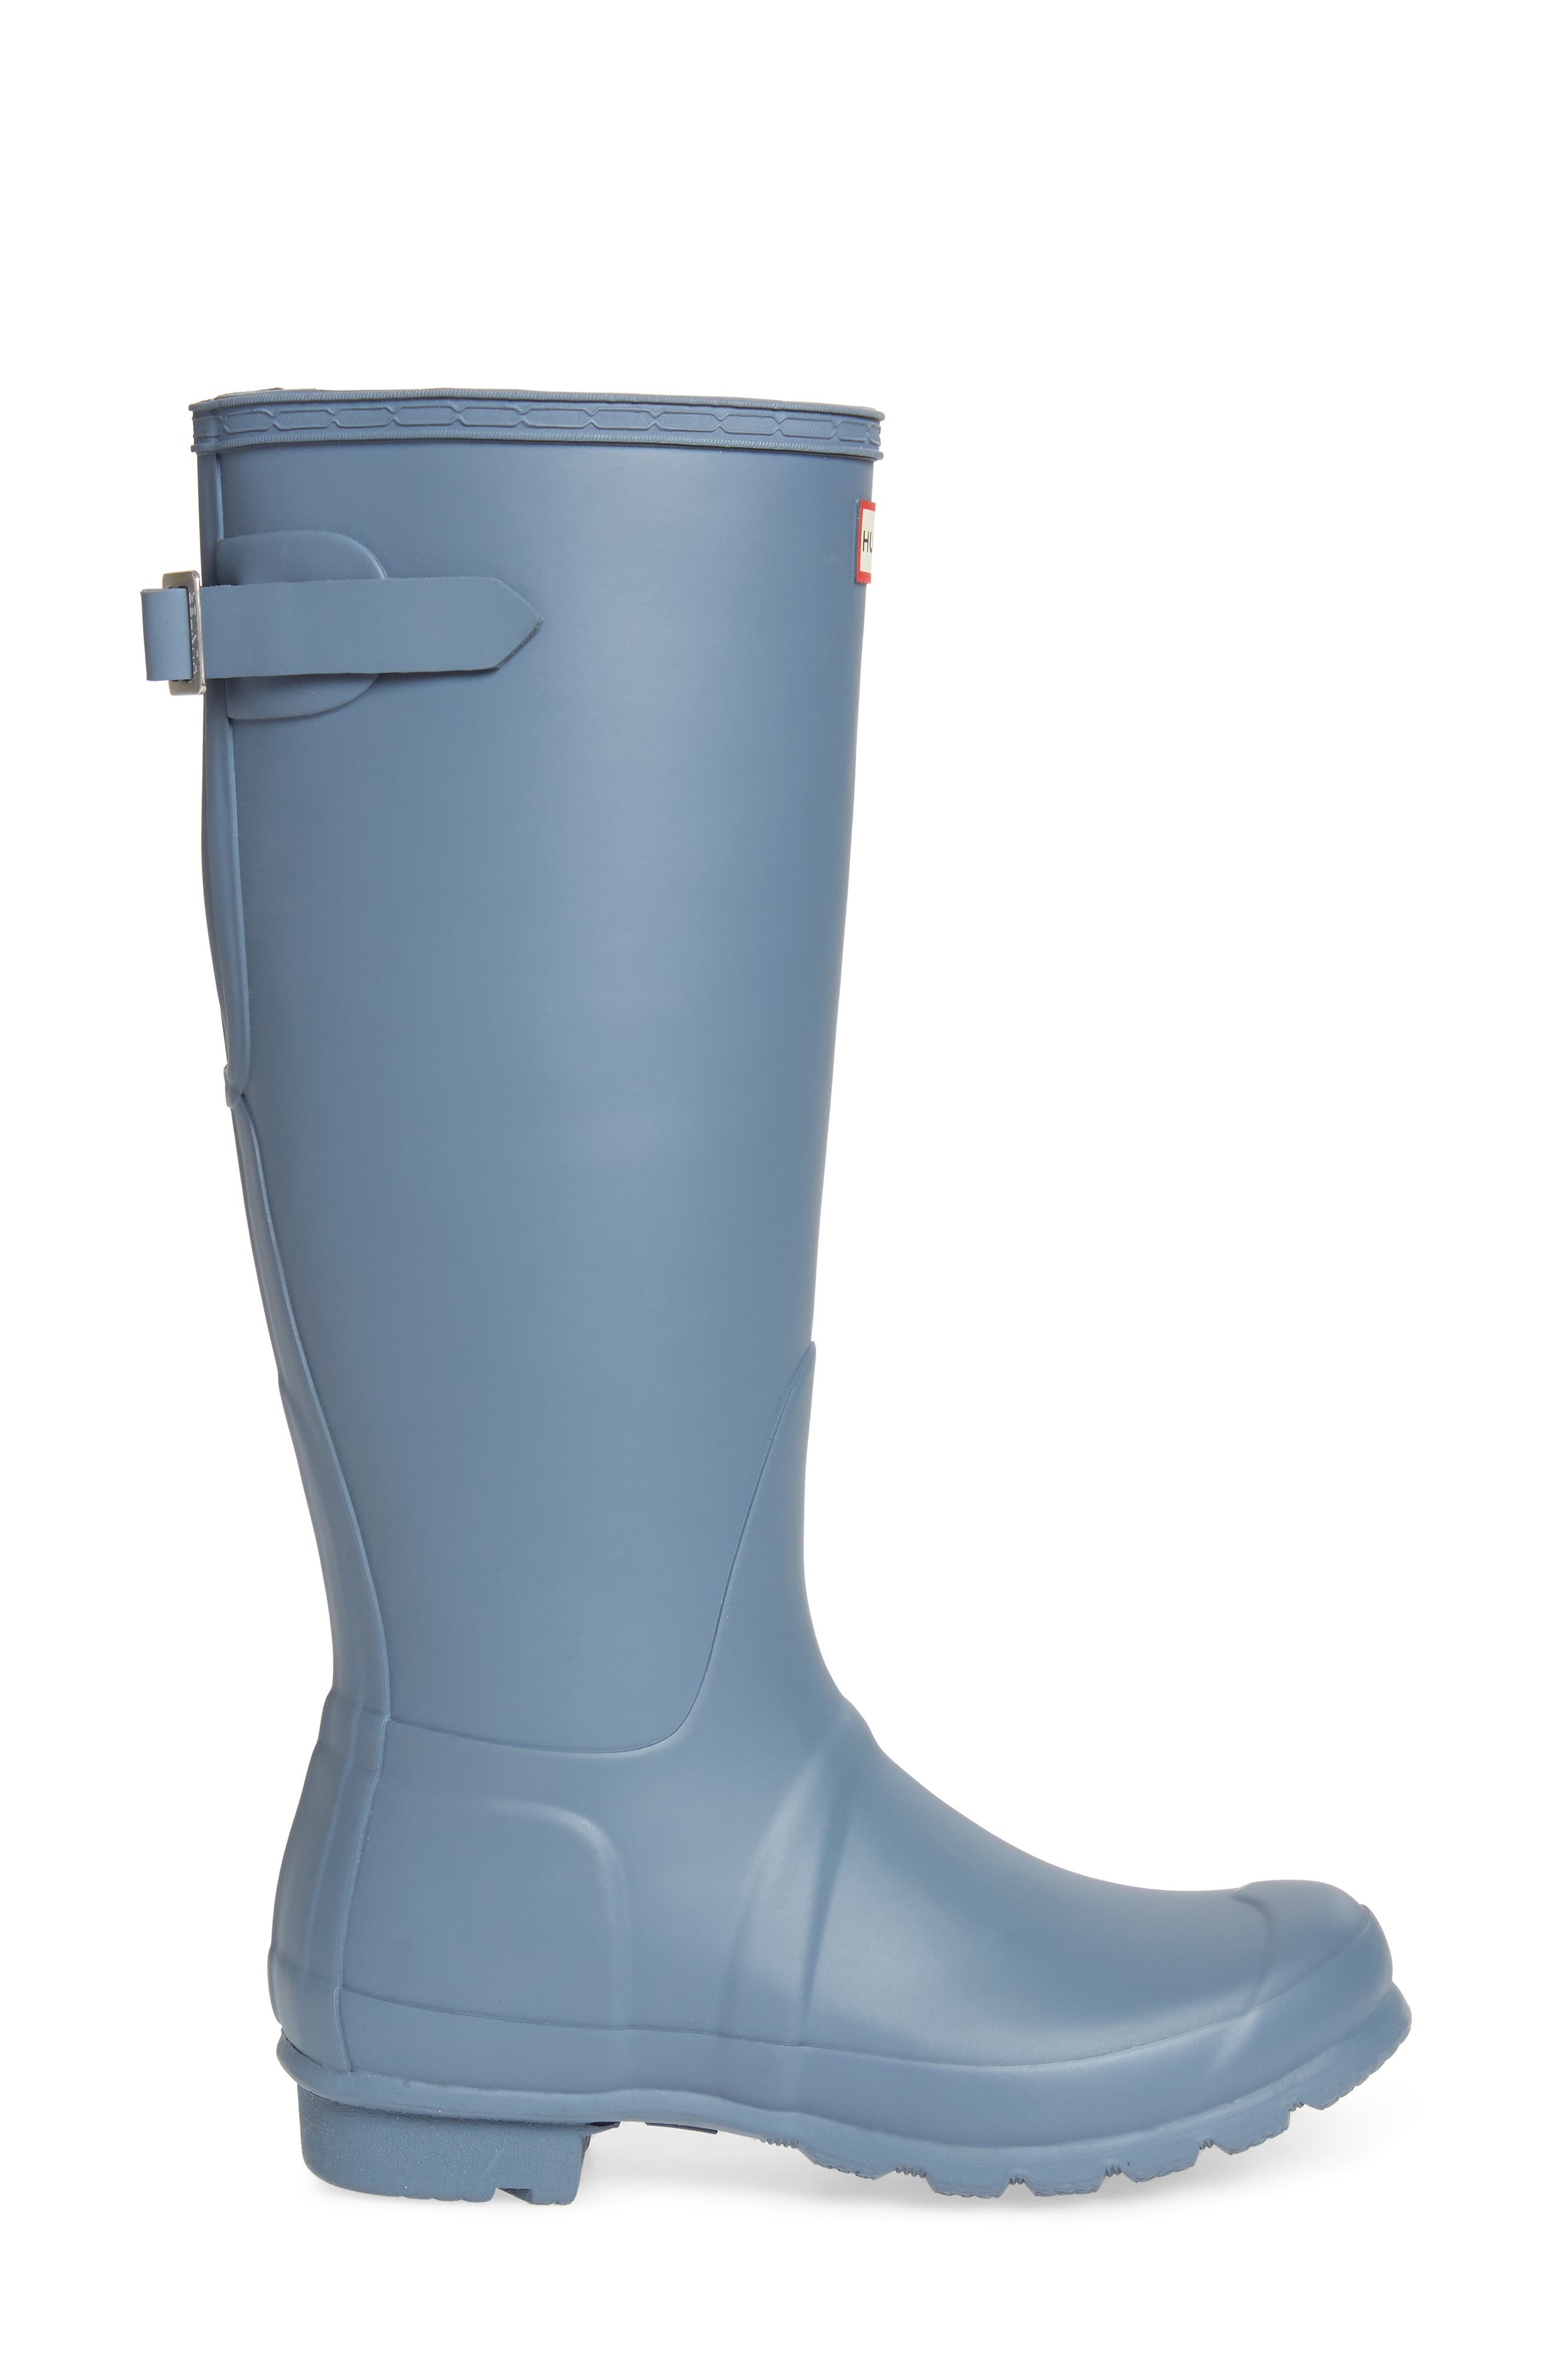 HUNTER, Original Tall Adjustable Back Waterproof Rain Boot, Alternate thumbnail 3, color, GULL GREY MATTE